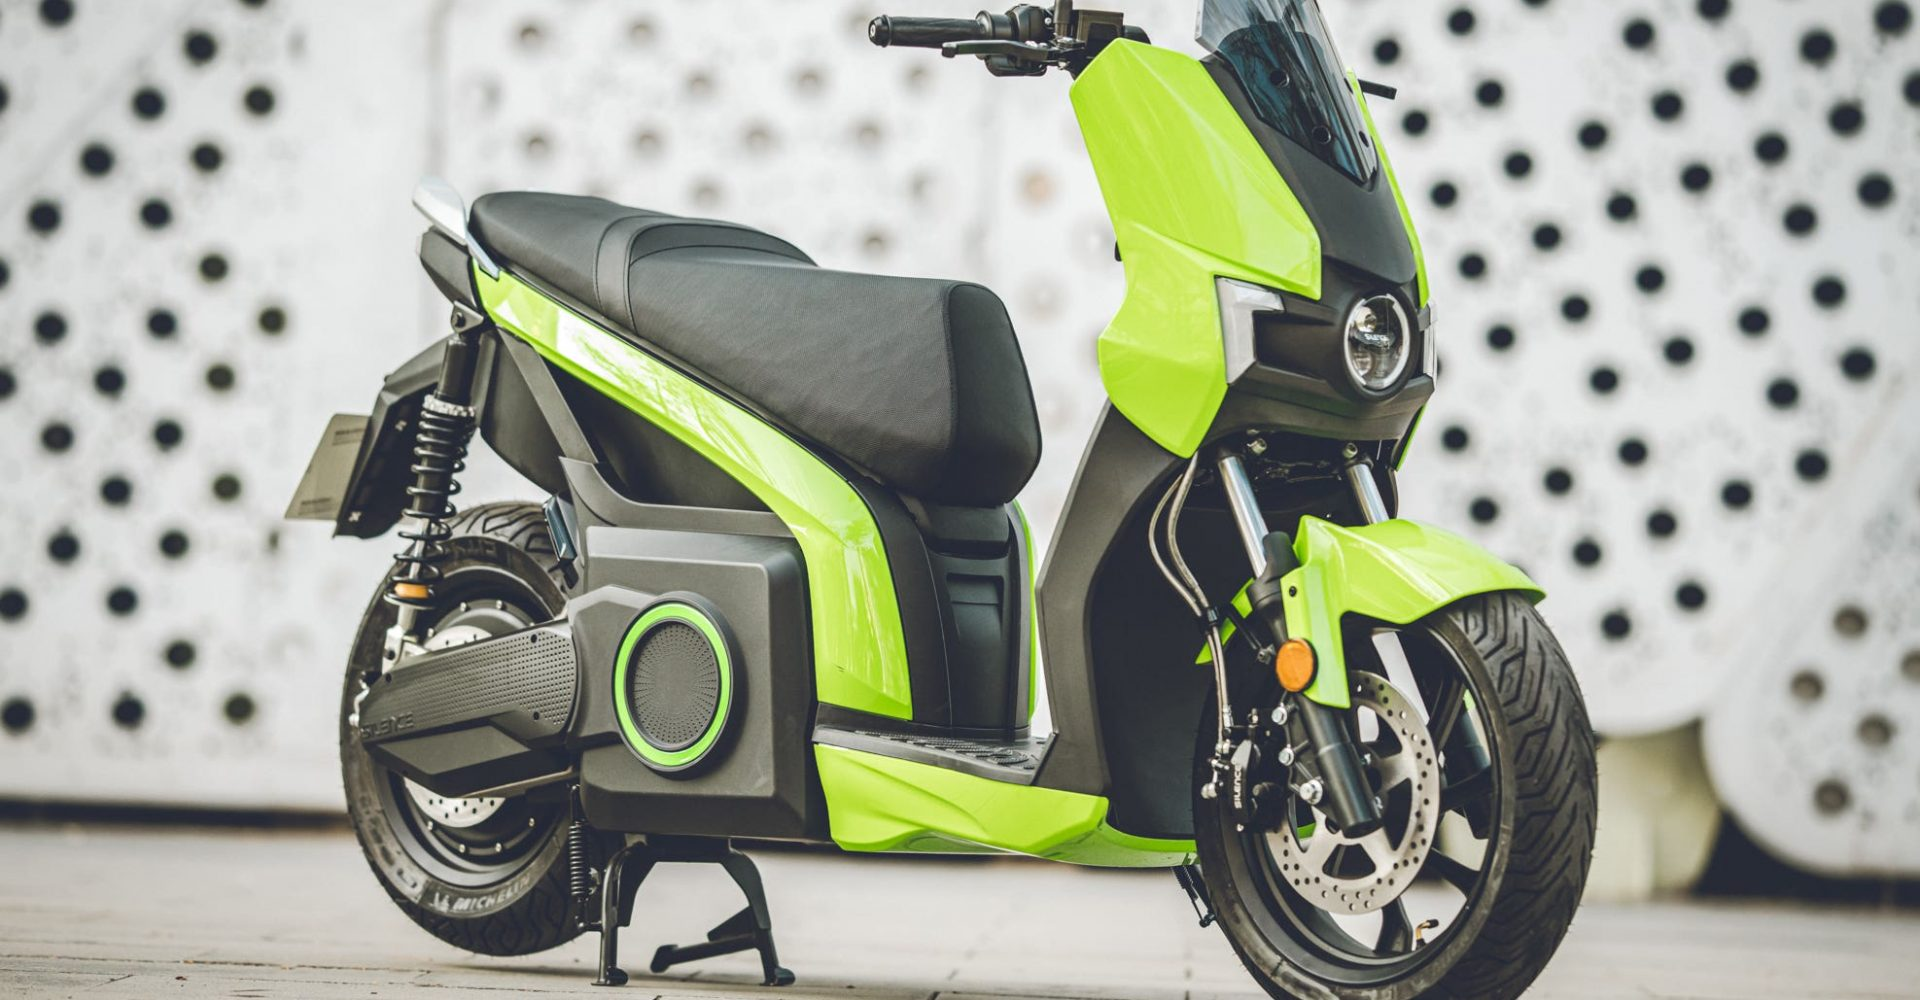 Silence e-moto scooter arrives in the UK as low-cost urban transport solution